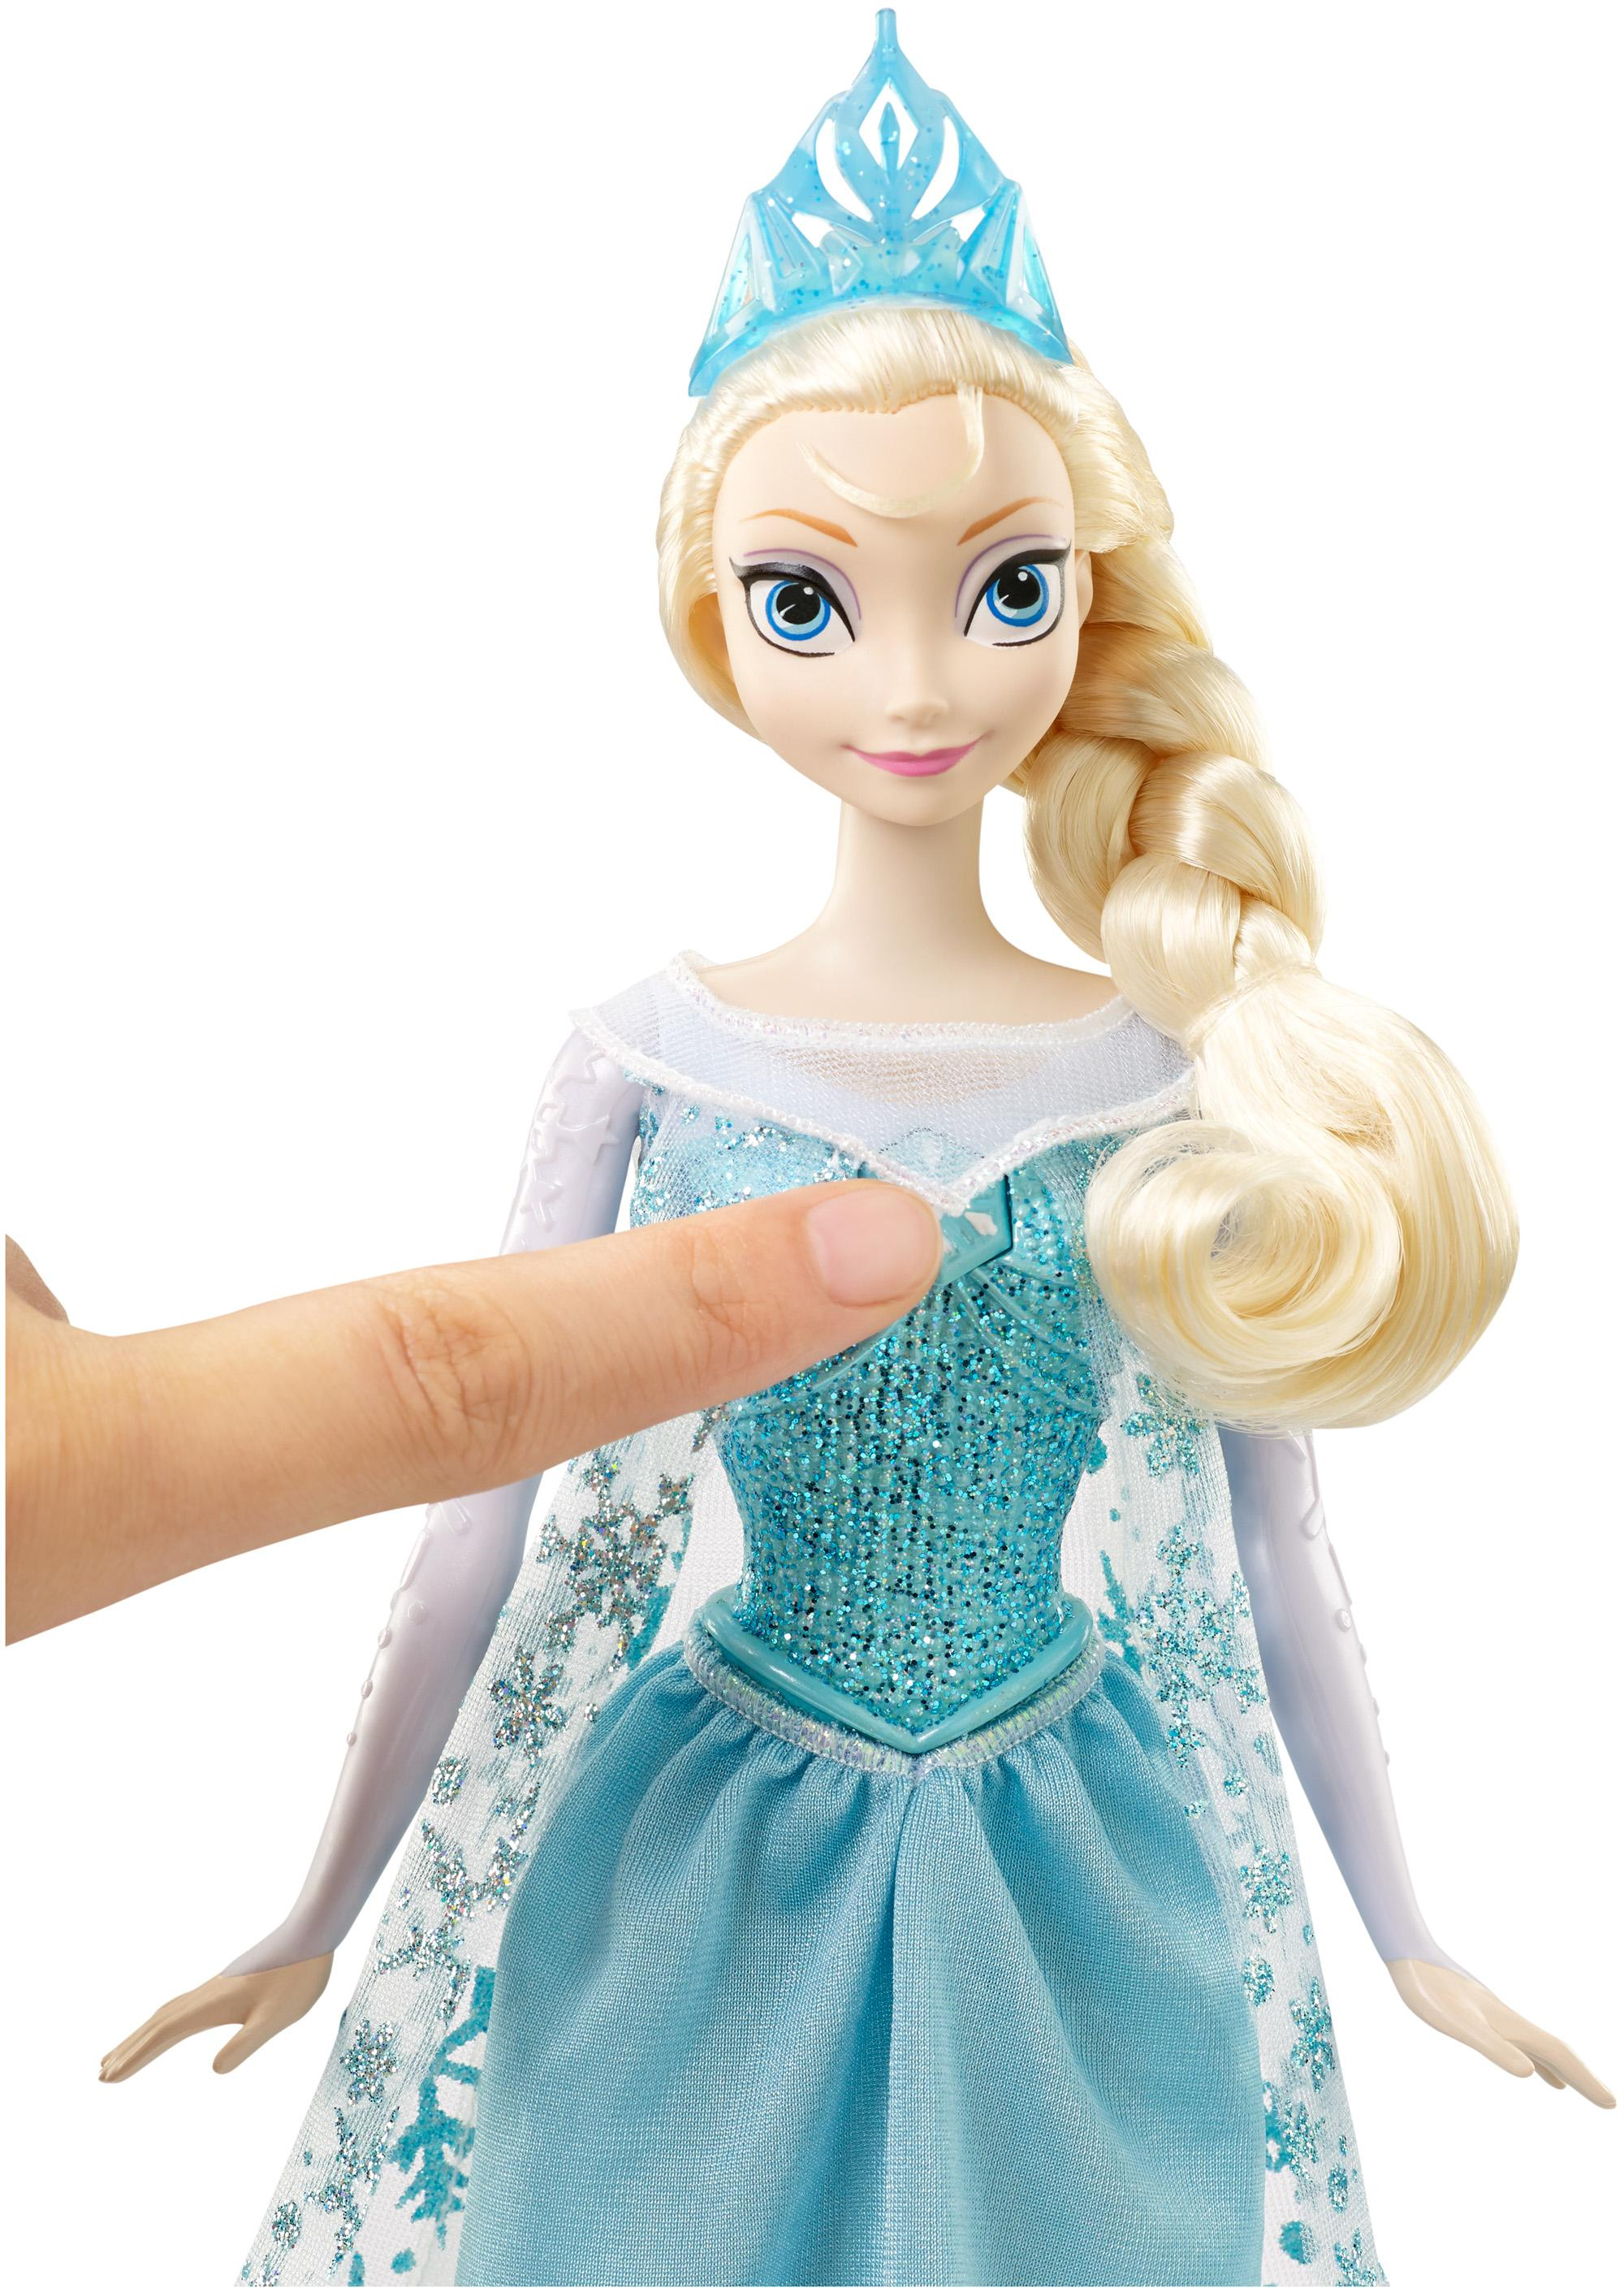 Buy disney frozen singing elsa doll online at low prices in india view larger voltagebd Choice Image